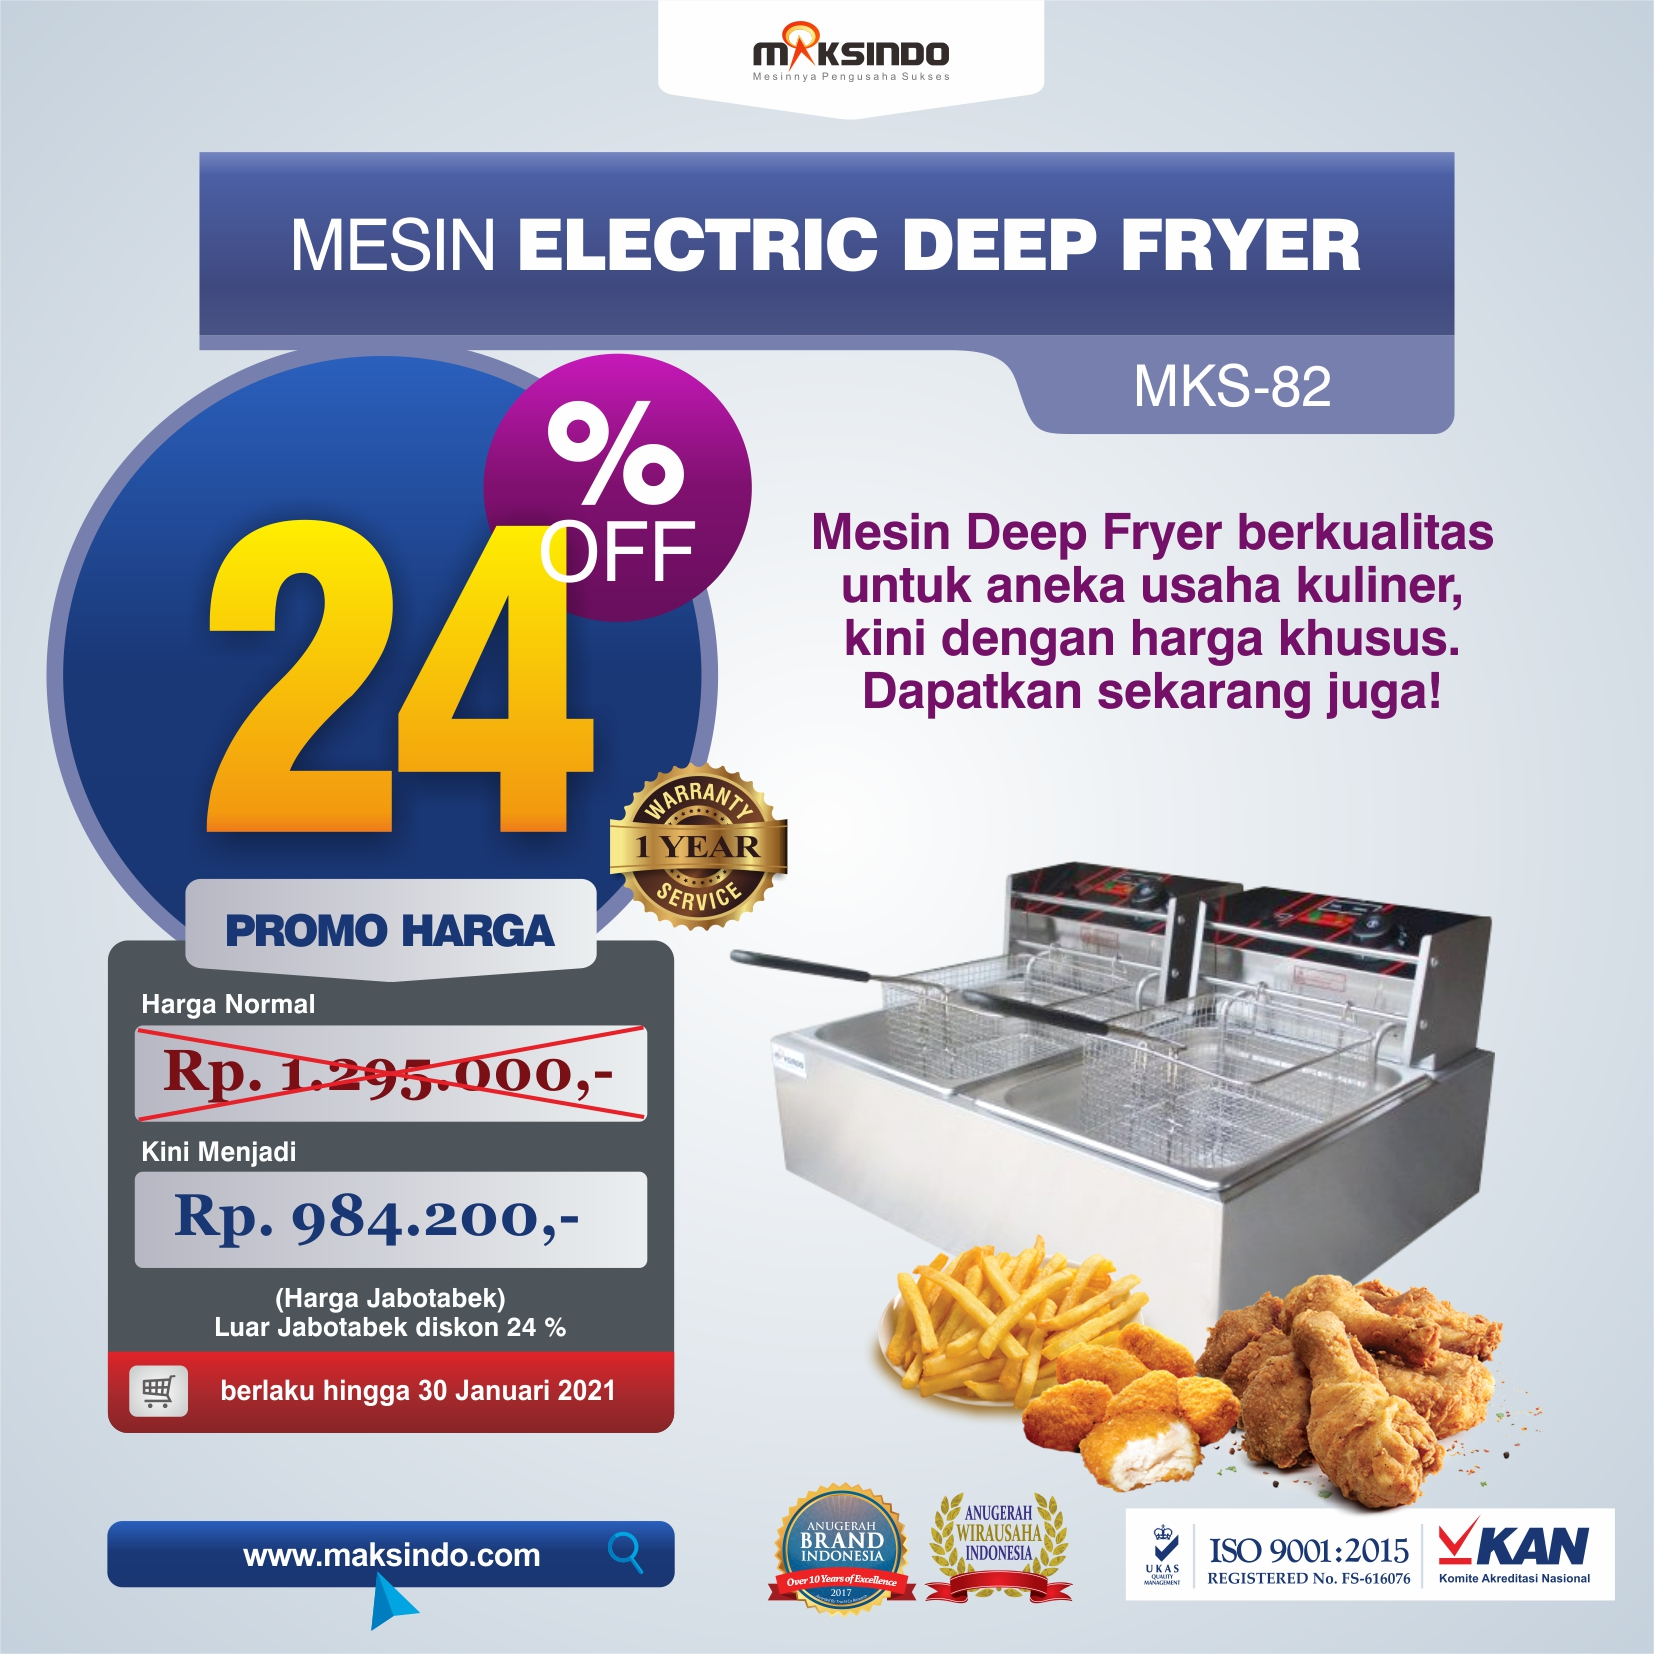 Jual Mesin Electric Deep Fryer MKS-82 di Solo